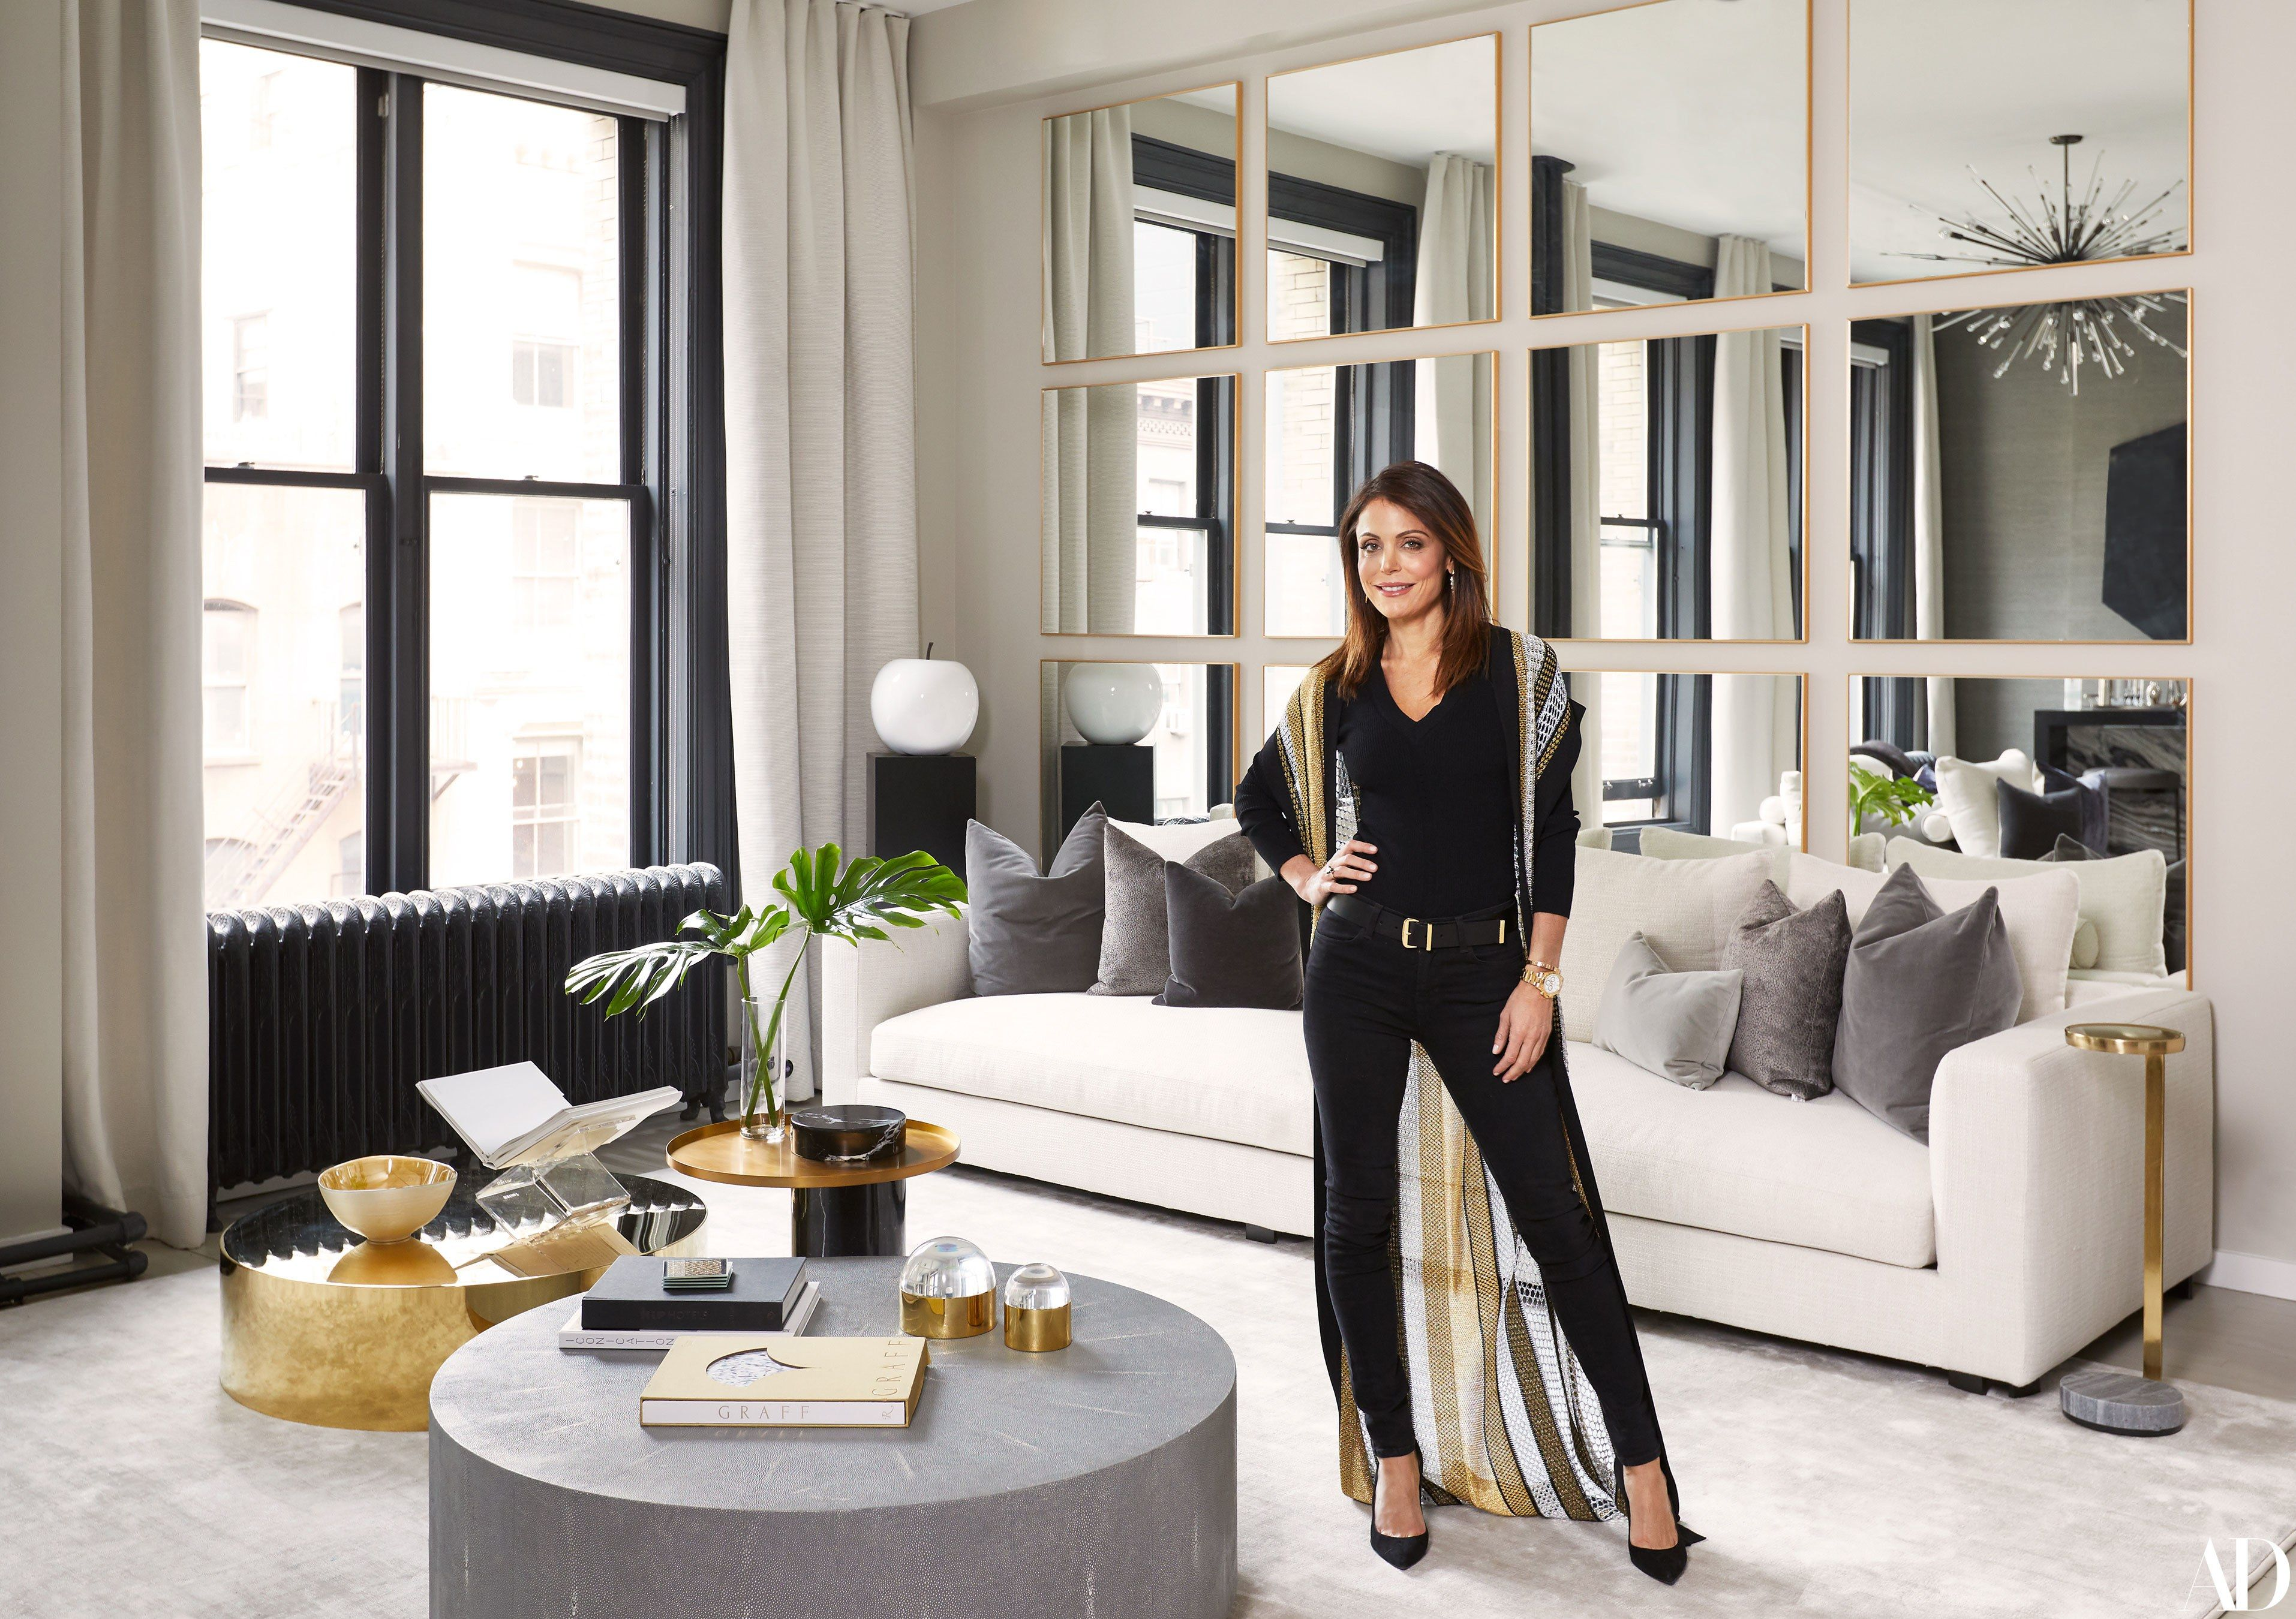 Bethenny Frankel Takes Us Inside Her Newly Renovated, 4,000-Square-Foot SoHo Artists Loft